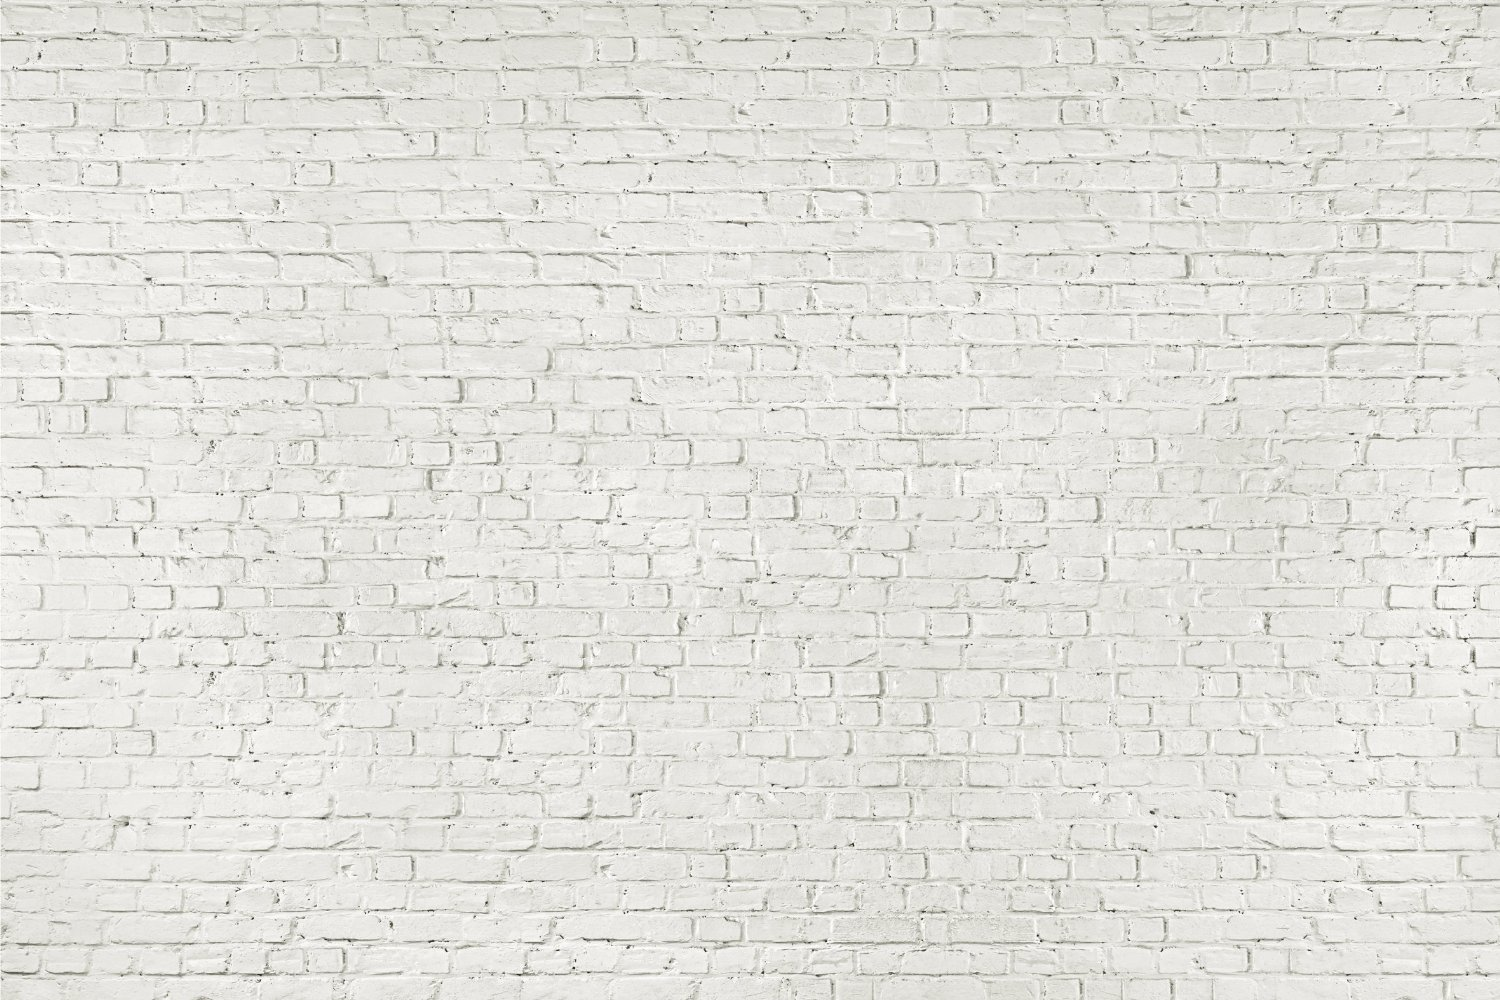 White Brick Wallpaper Wallpapers Gallery 1500x1000